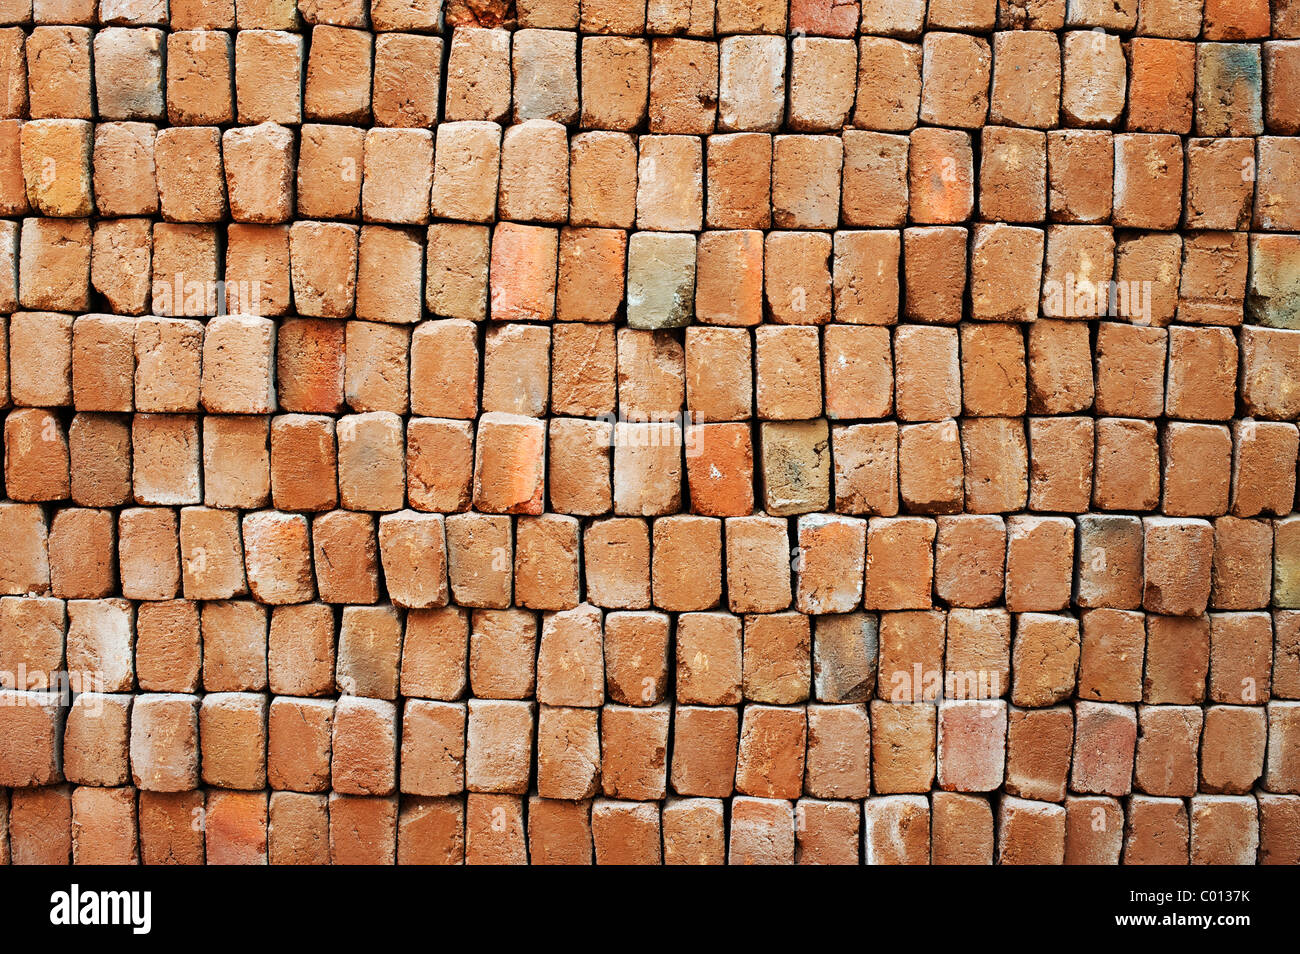 Pile of hand made bricks pattern. India - Stock Image